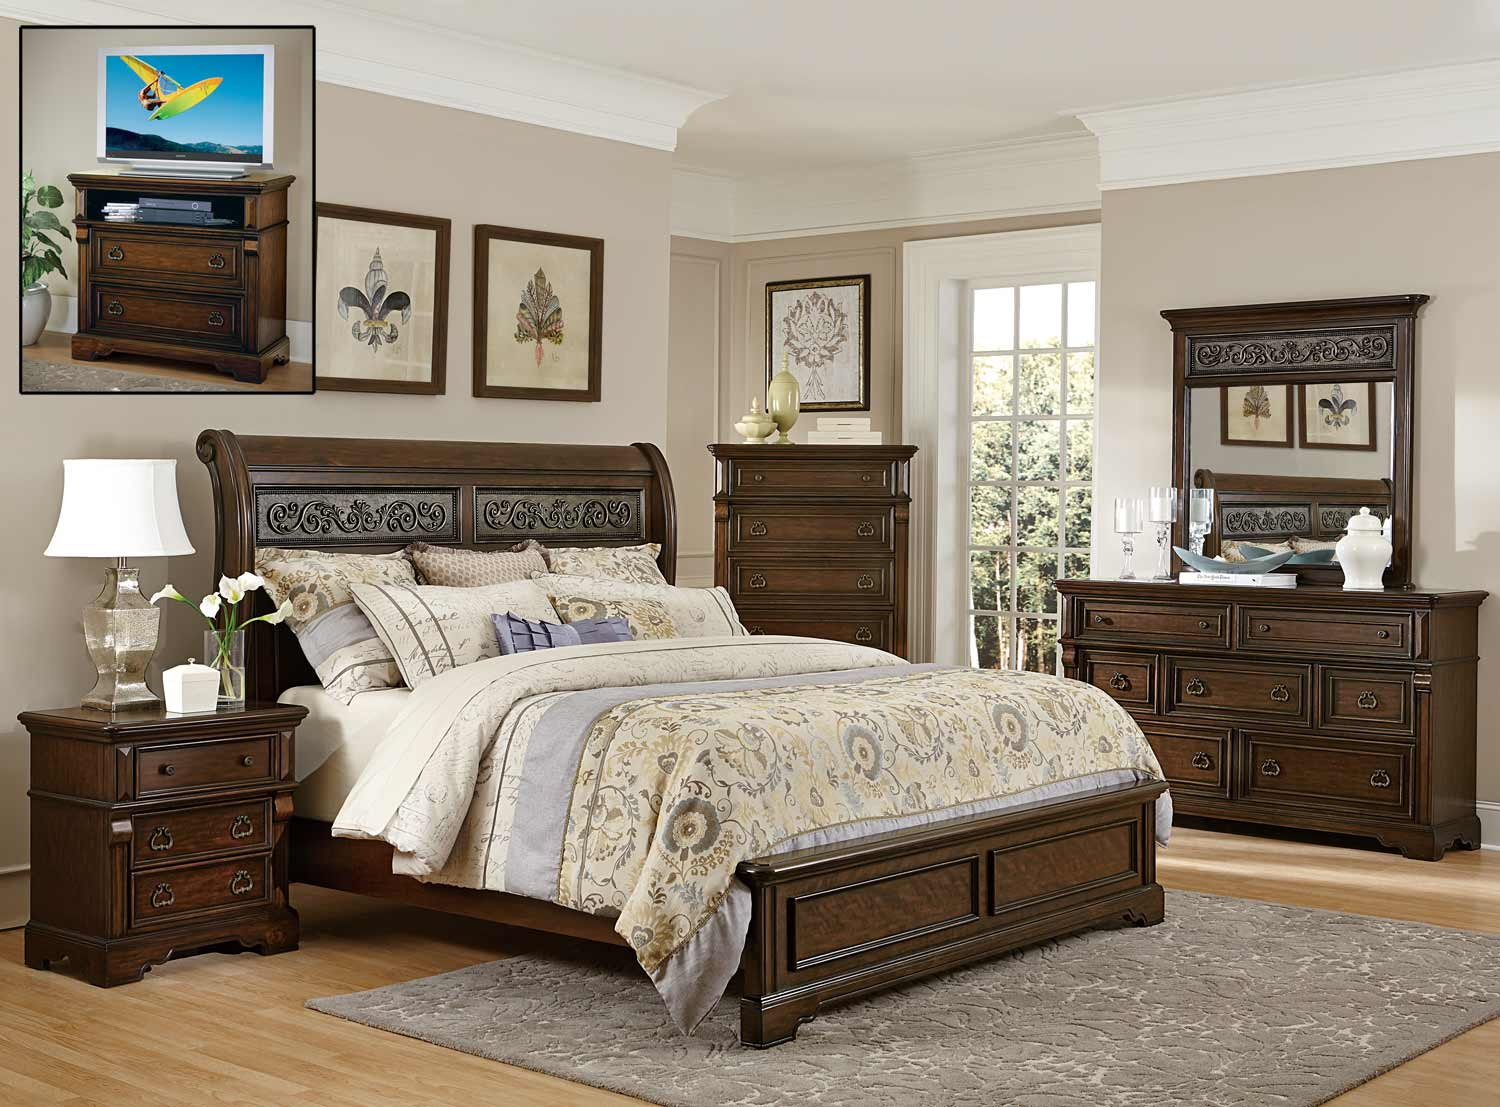 Homelegance Calloway Park Bedroom Set - Warm Cherry